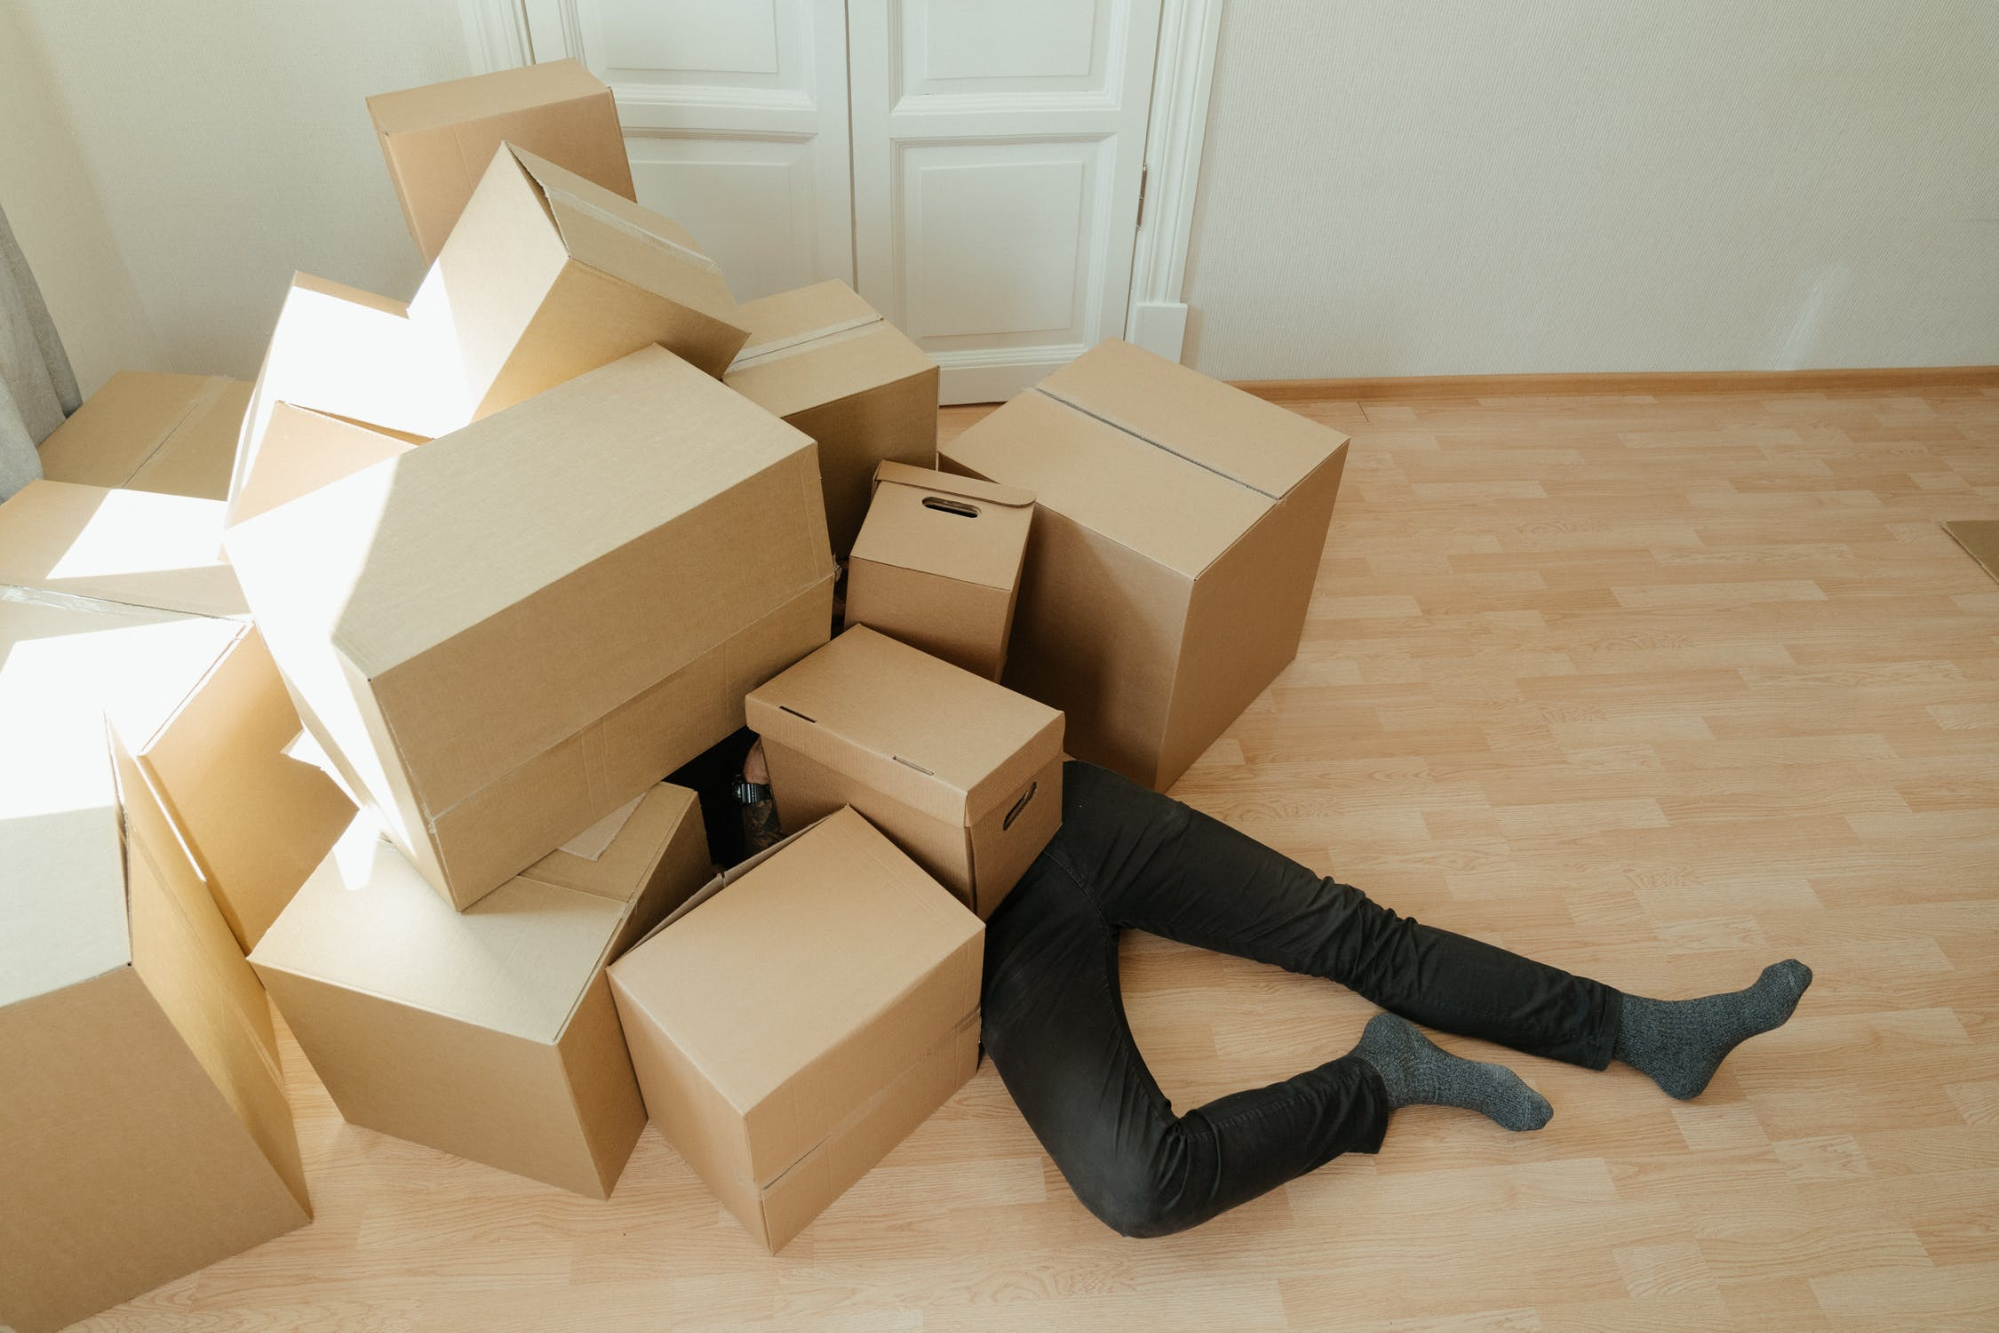 A person stuck under a pile of boxes.